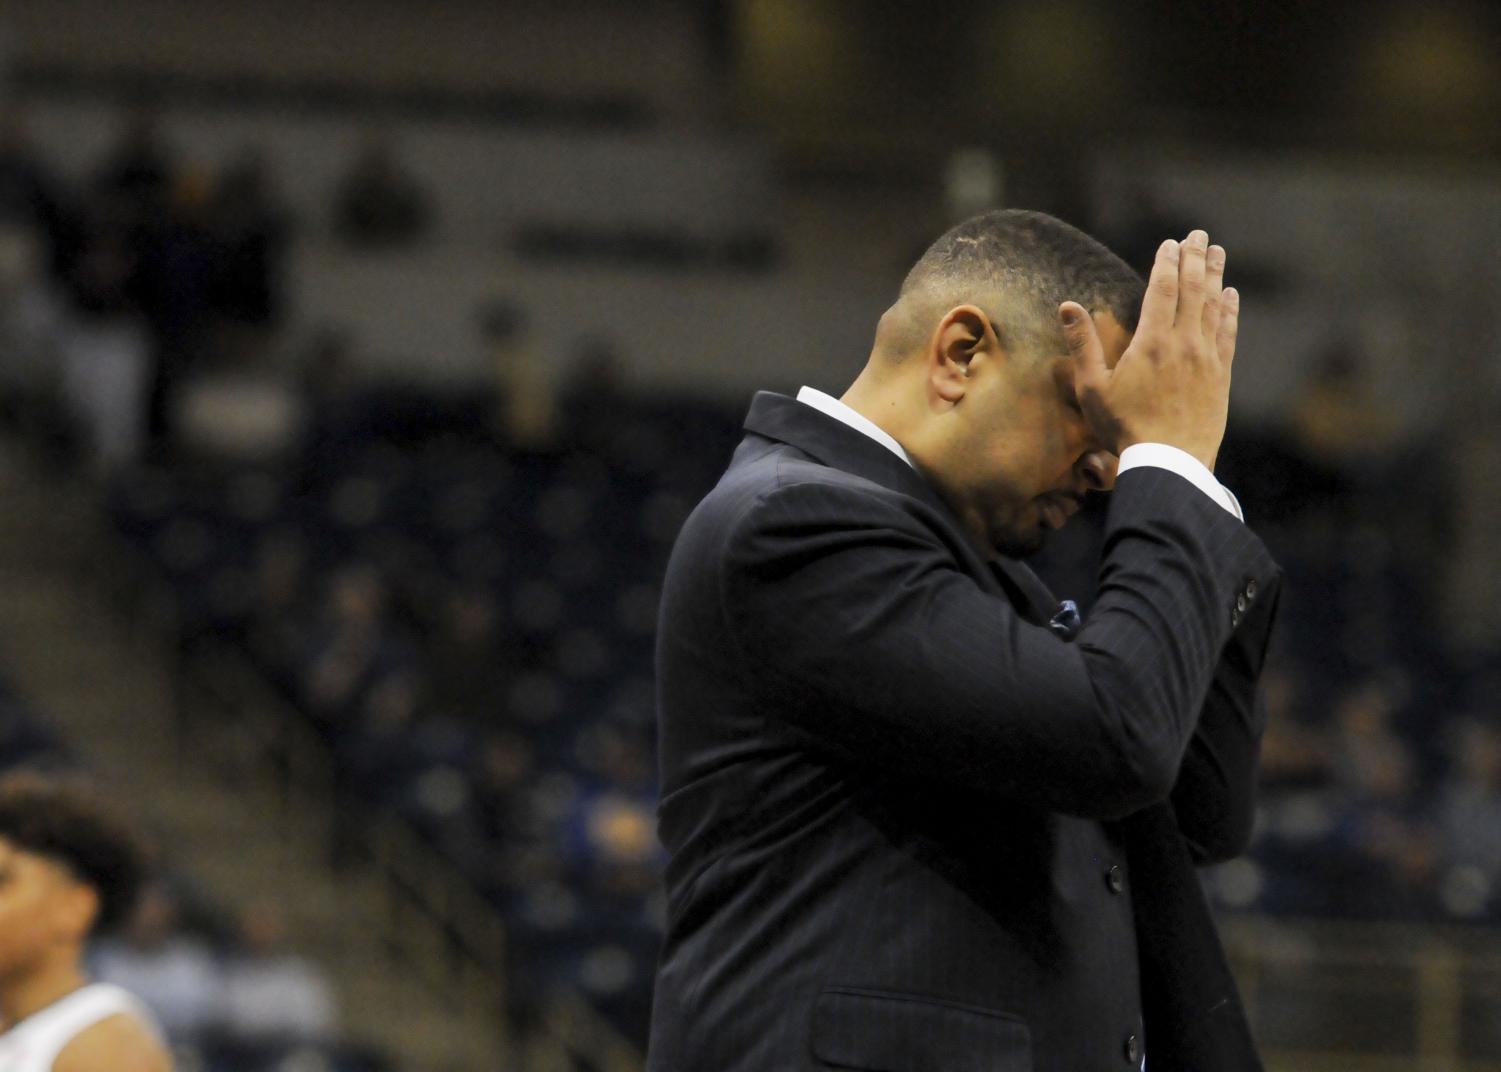 """Head coach Jeff Capel described Pitt's performance against Clemson on Wednesday as """"bad across the board."""""""